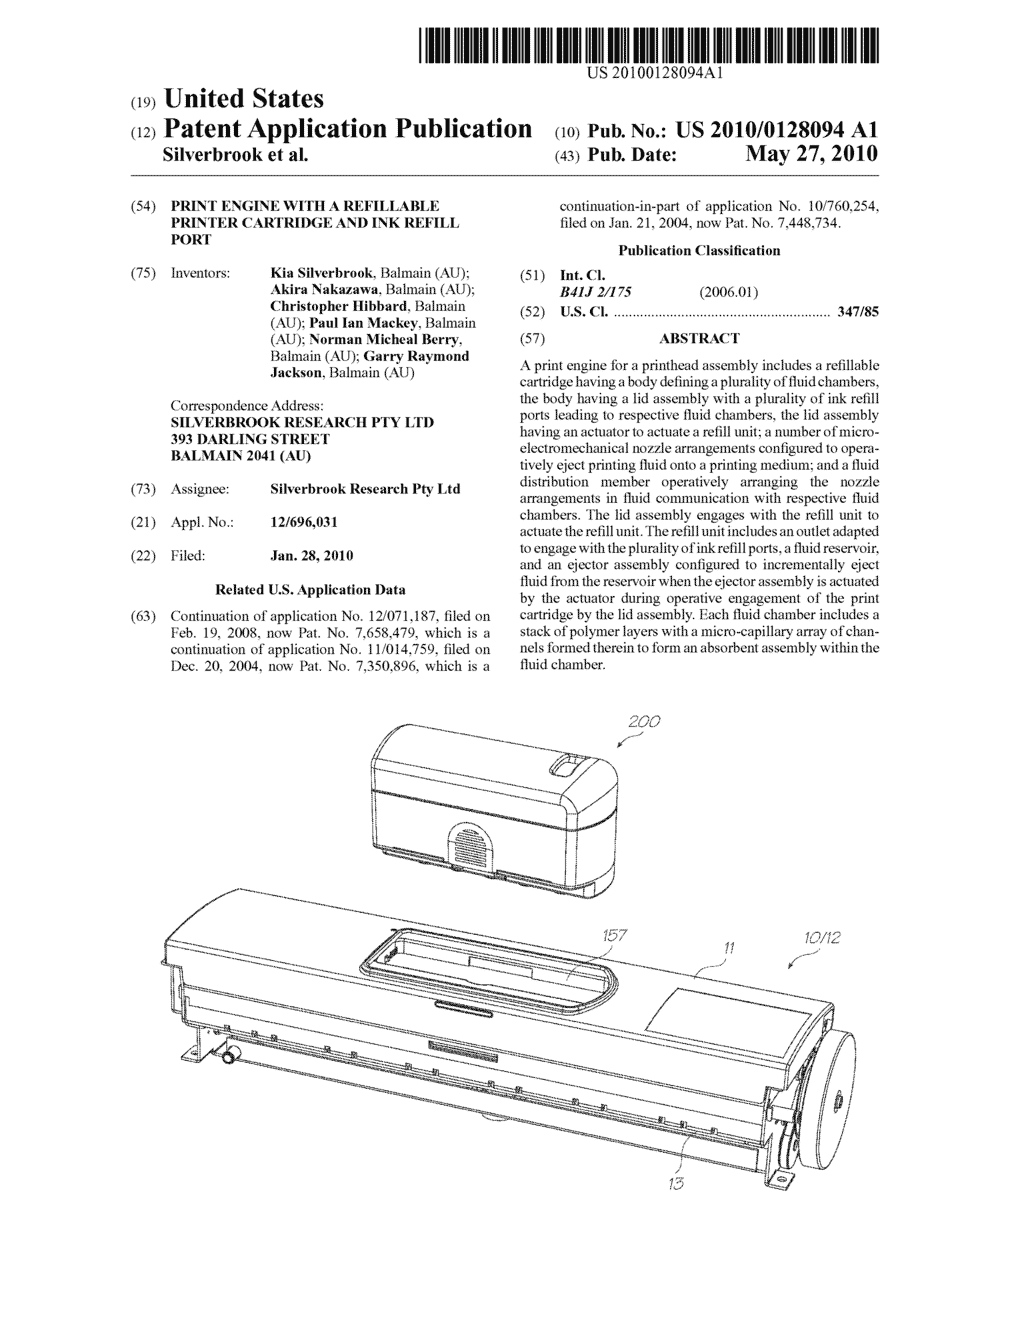 Print Engine With A Refillable Printer Cartridge And Ink Refill Port - diagram, schematic, and image 01